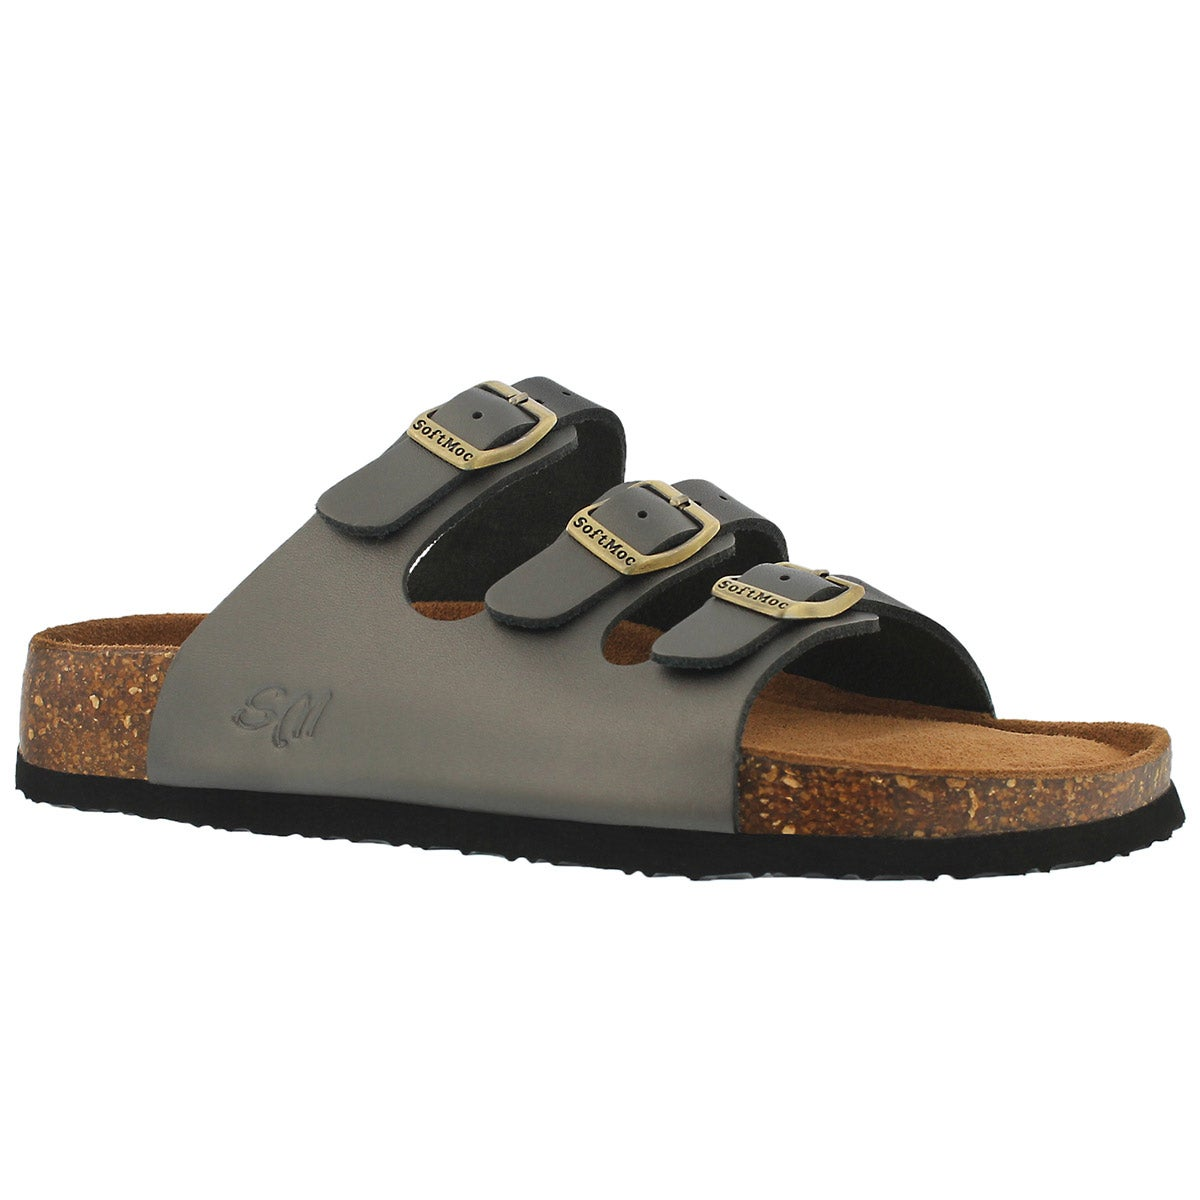 Women's ALEXIS 5 pewter memory foam sandals